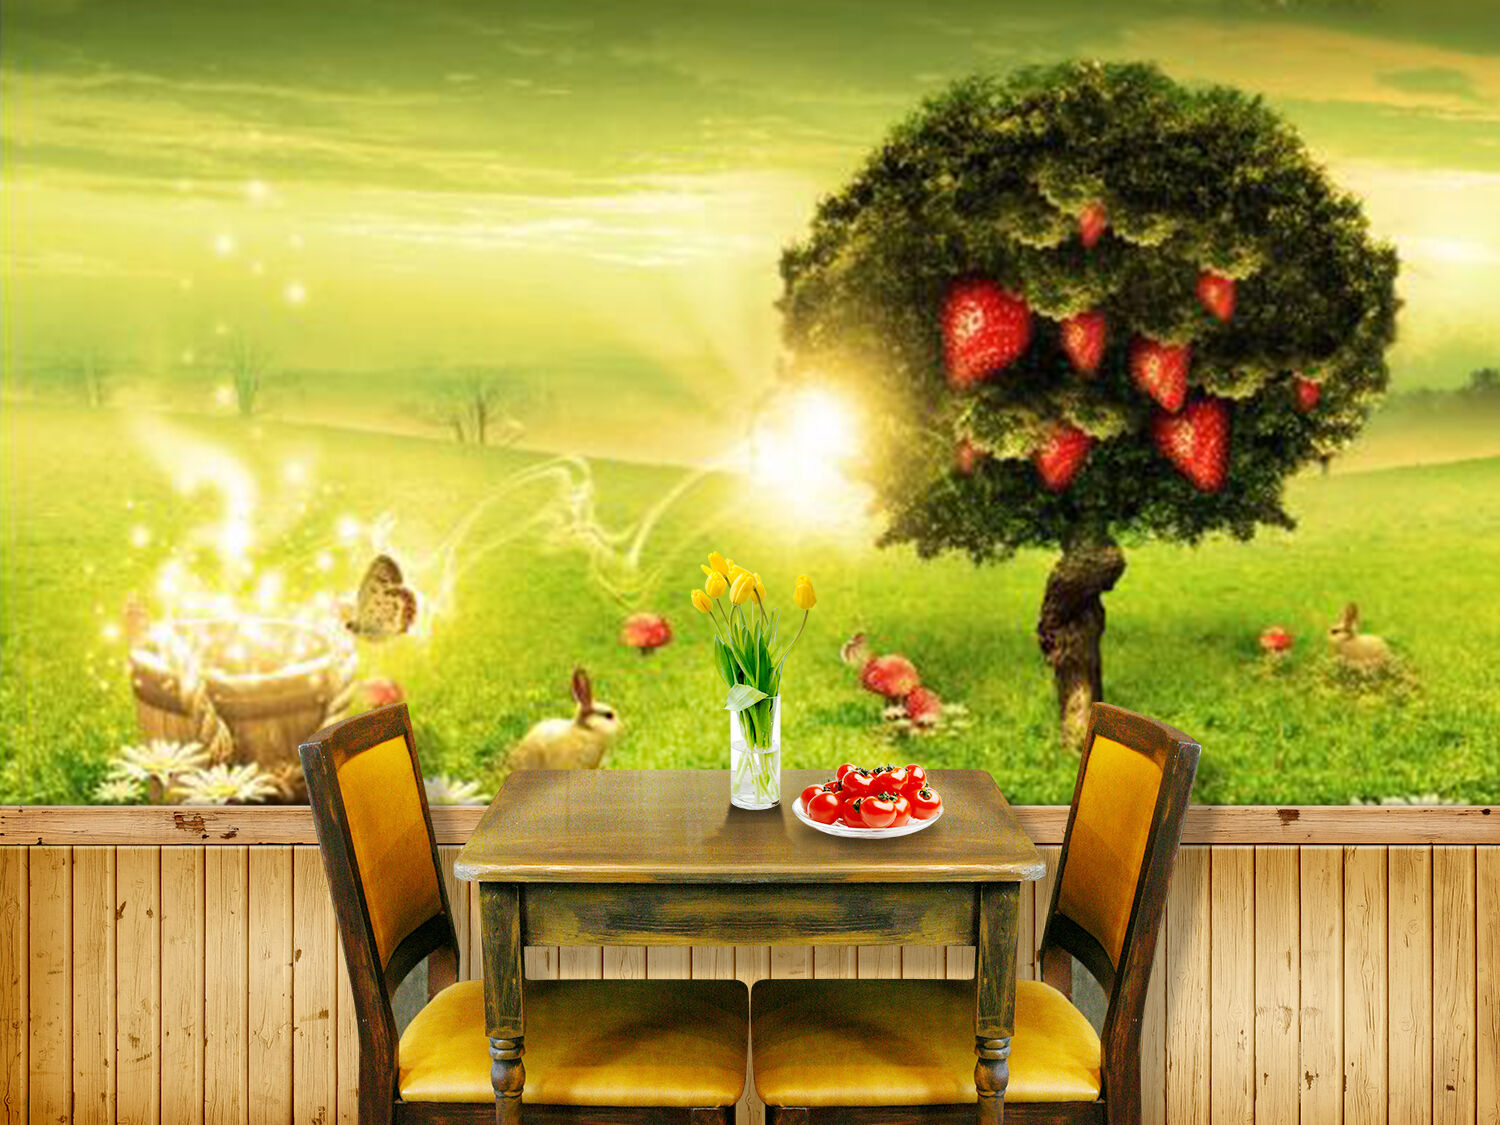 3D Forest fruits nursery Wallpaper Decal Decor Home Kids Nursery Mural  Home